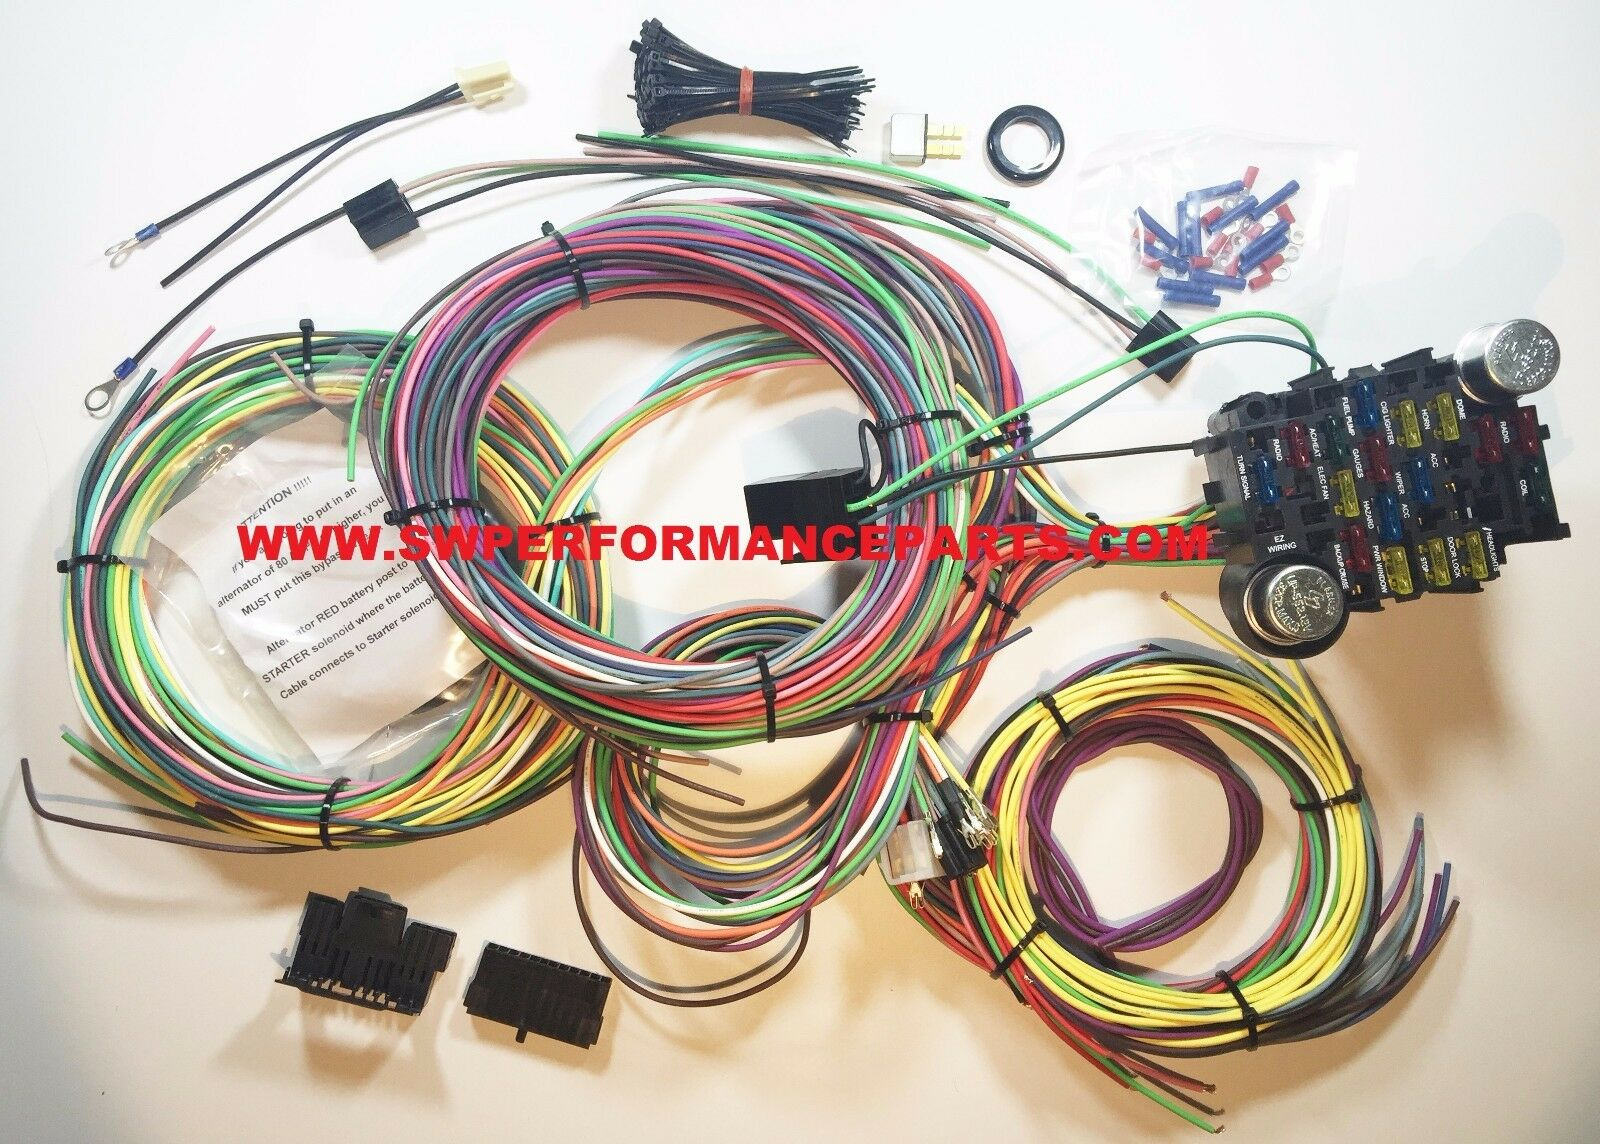 Easy Wiring Harness For Gauges Reveolution Of Diagram Cluster 21 Circuit Ez Chevy Mopar Ford Hotrods Universal X Rh Picclick Com 14 Gauge